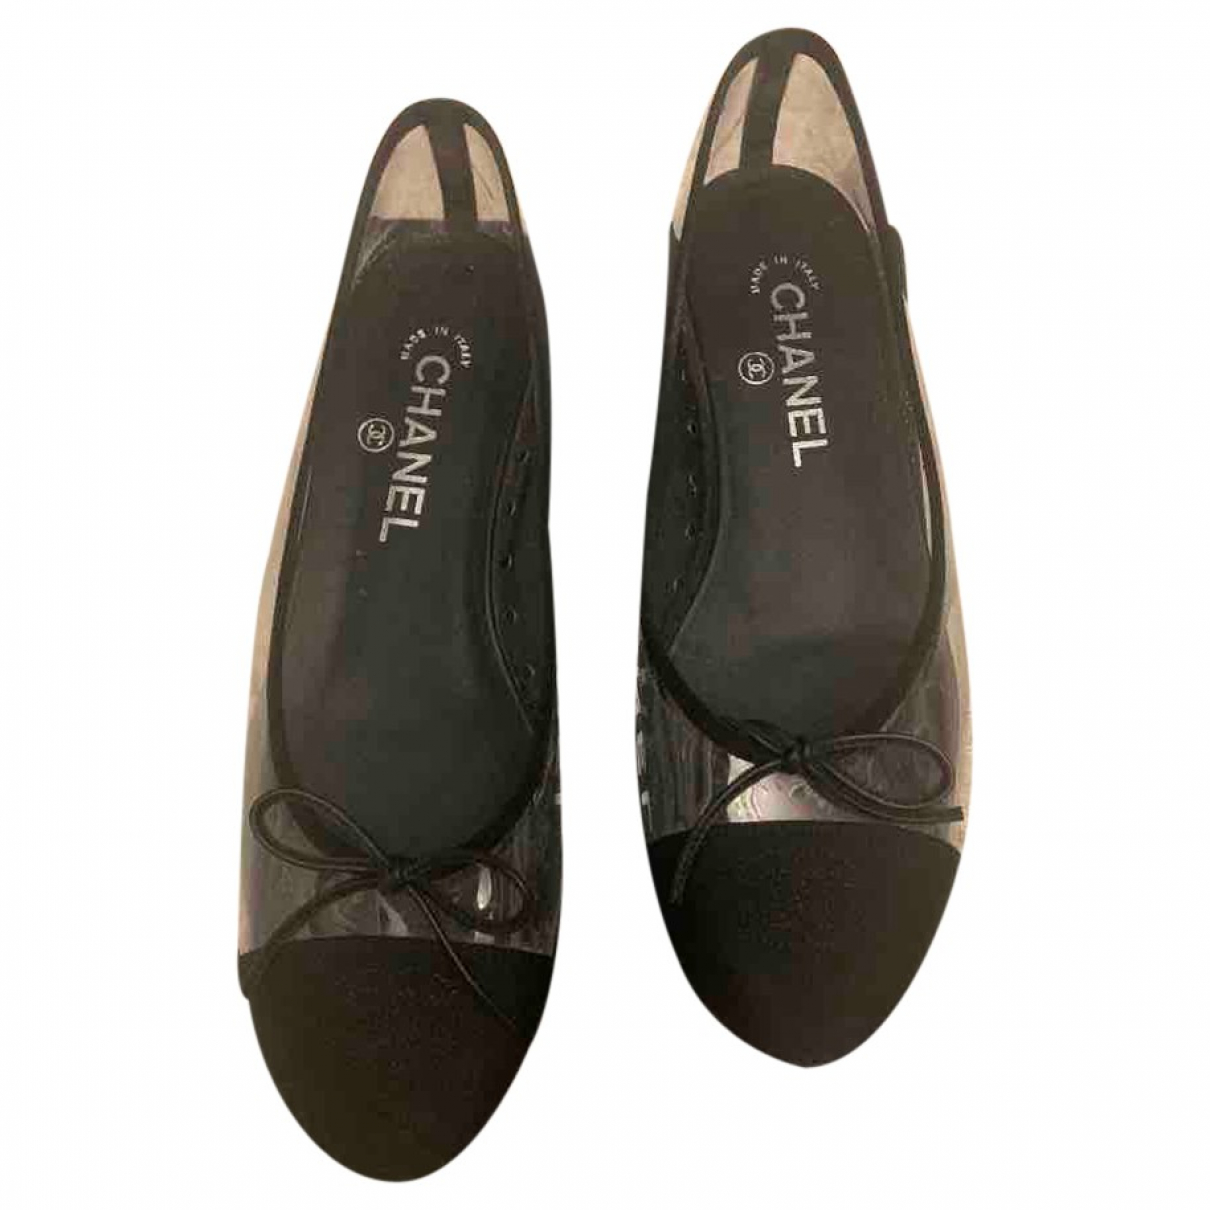 Chanel \N Ballerinas in  Schwarz Leinen